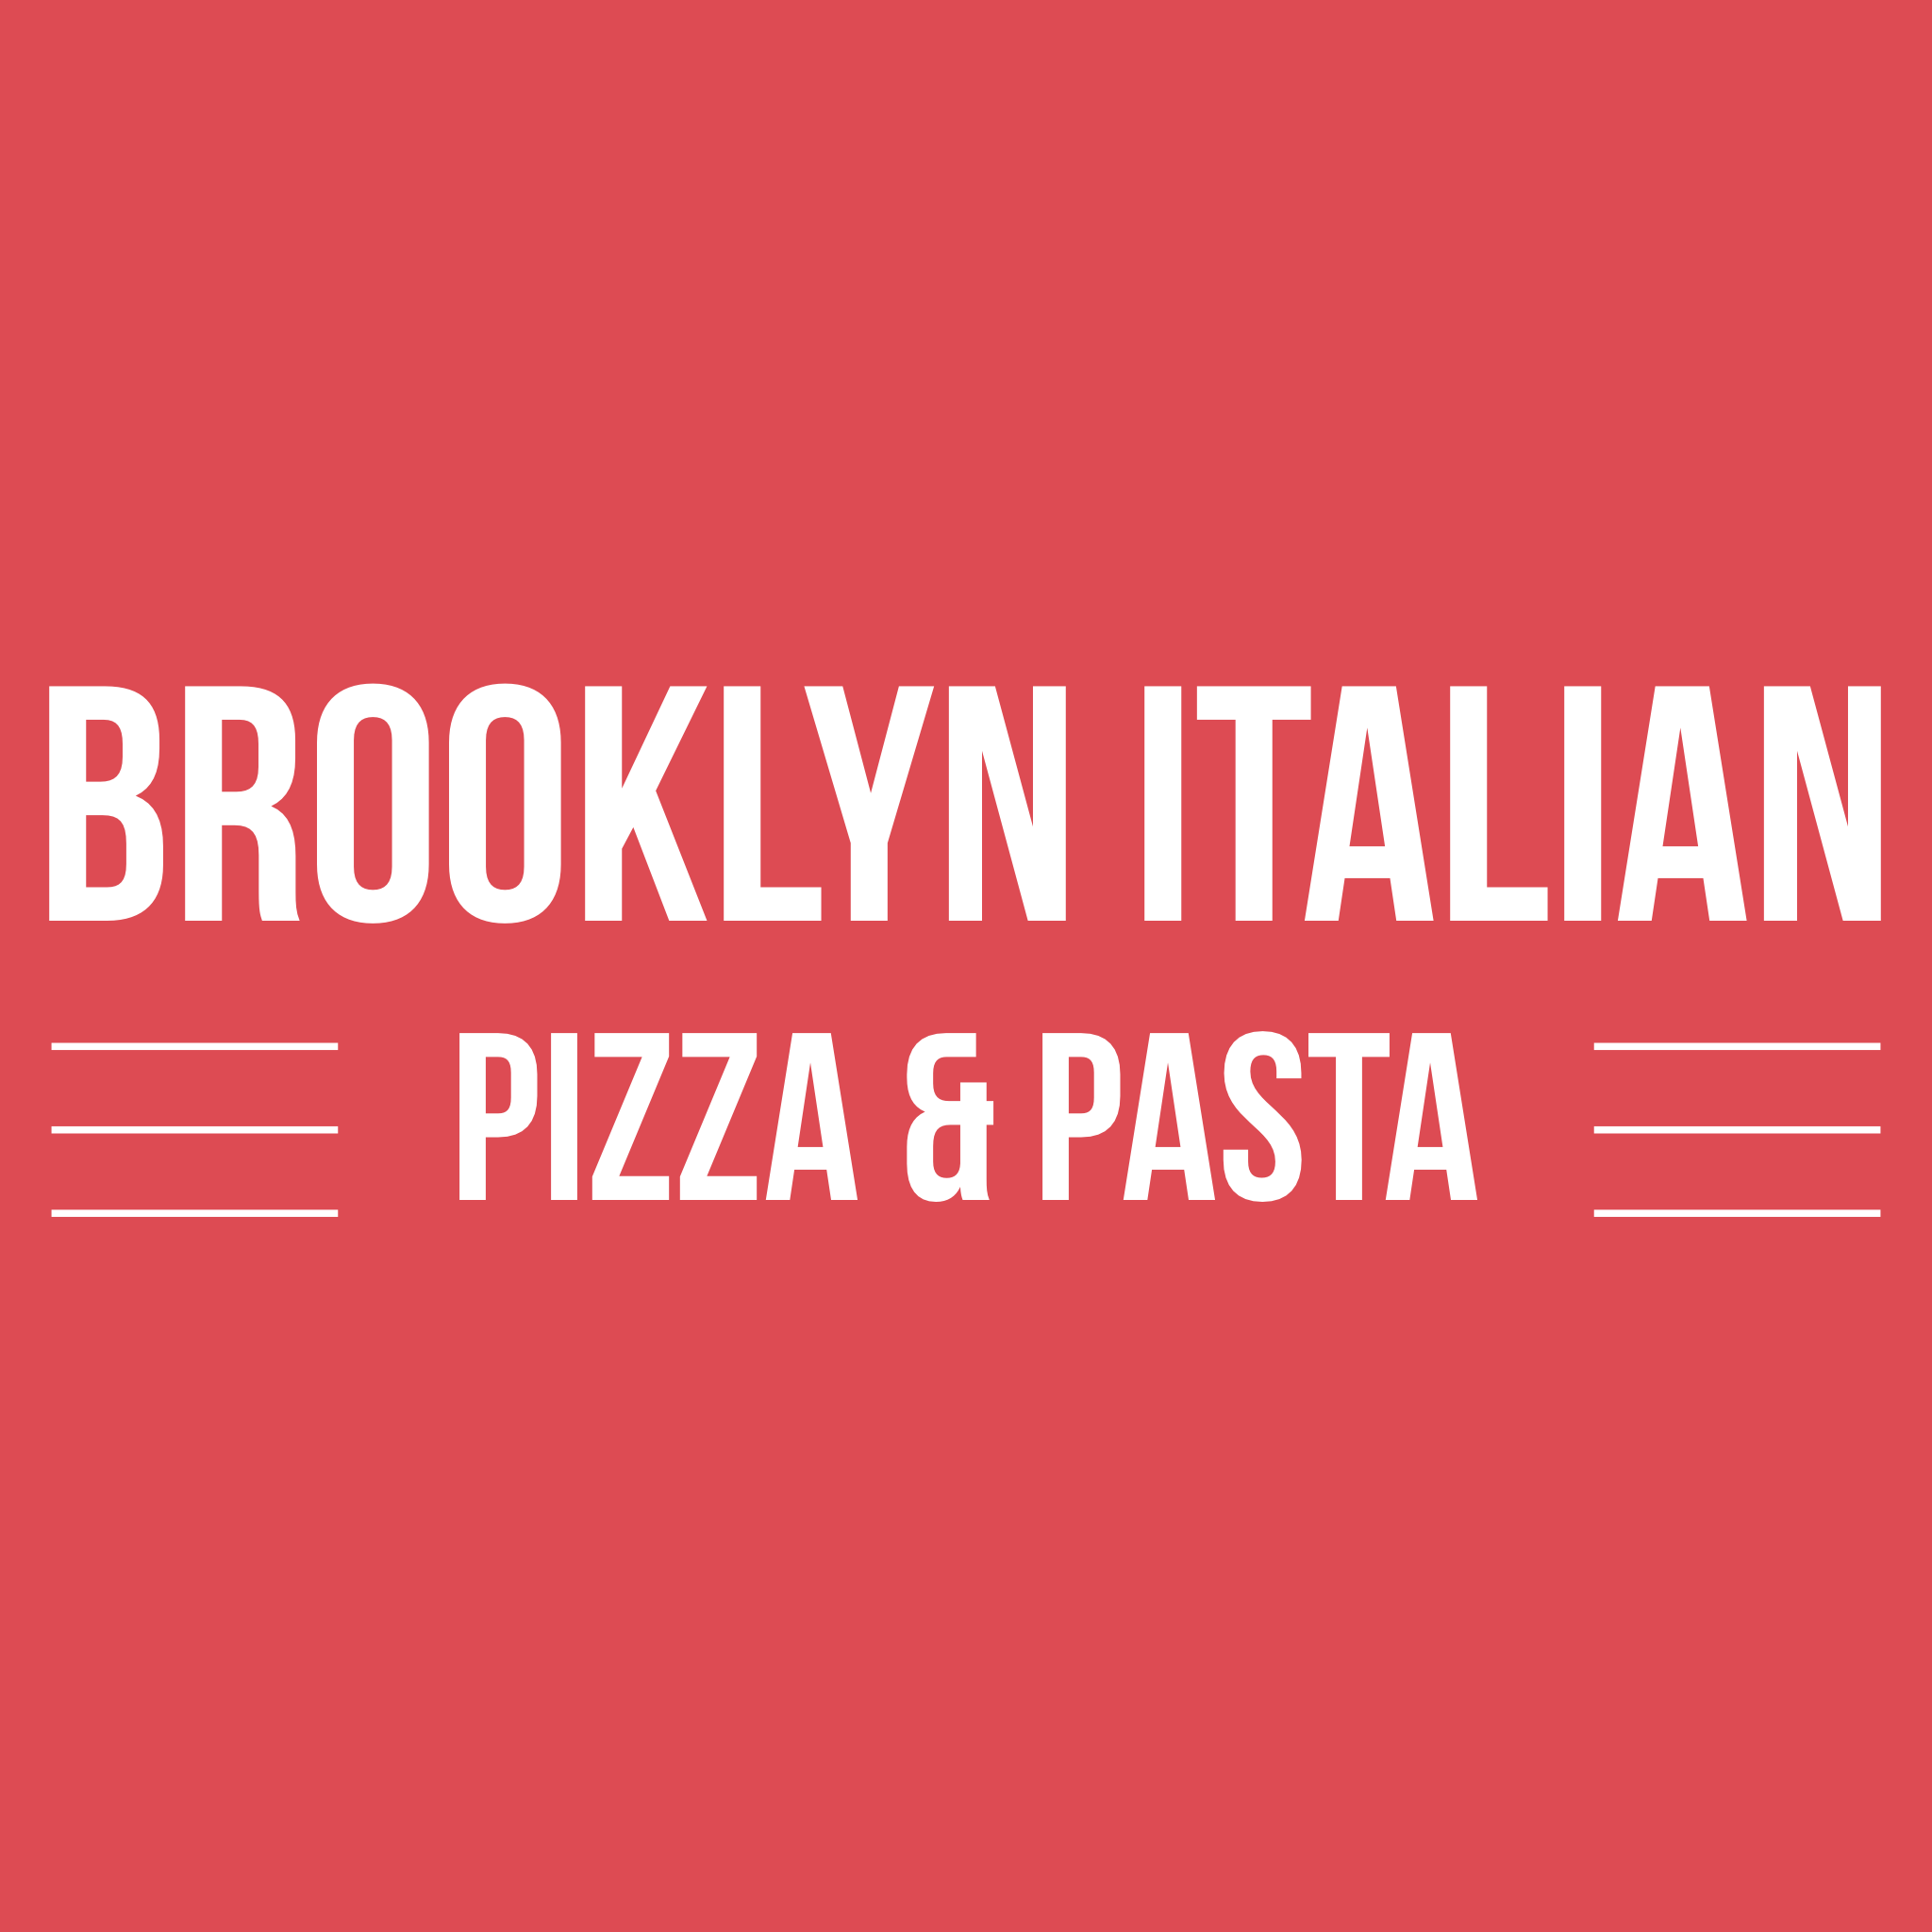 Brooklyn Italian Pizza & Pasta